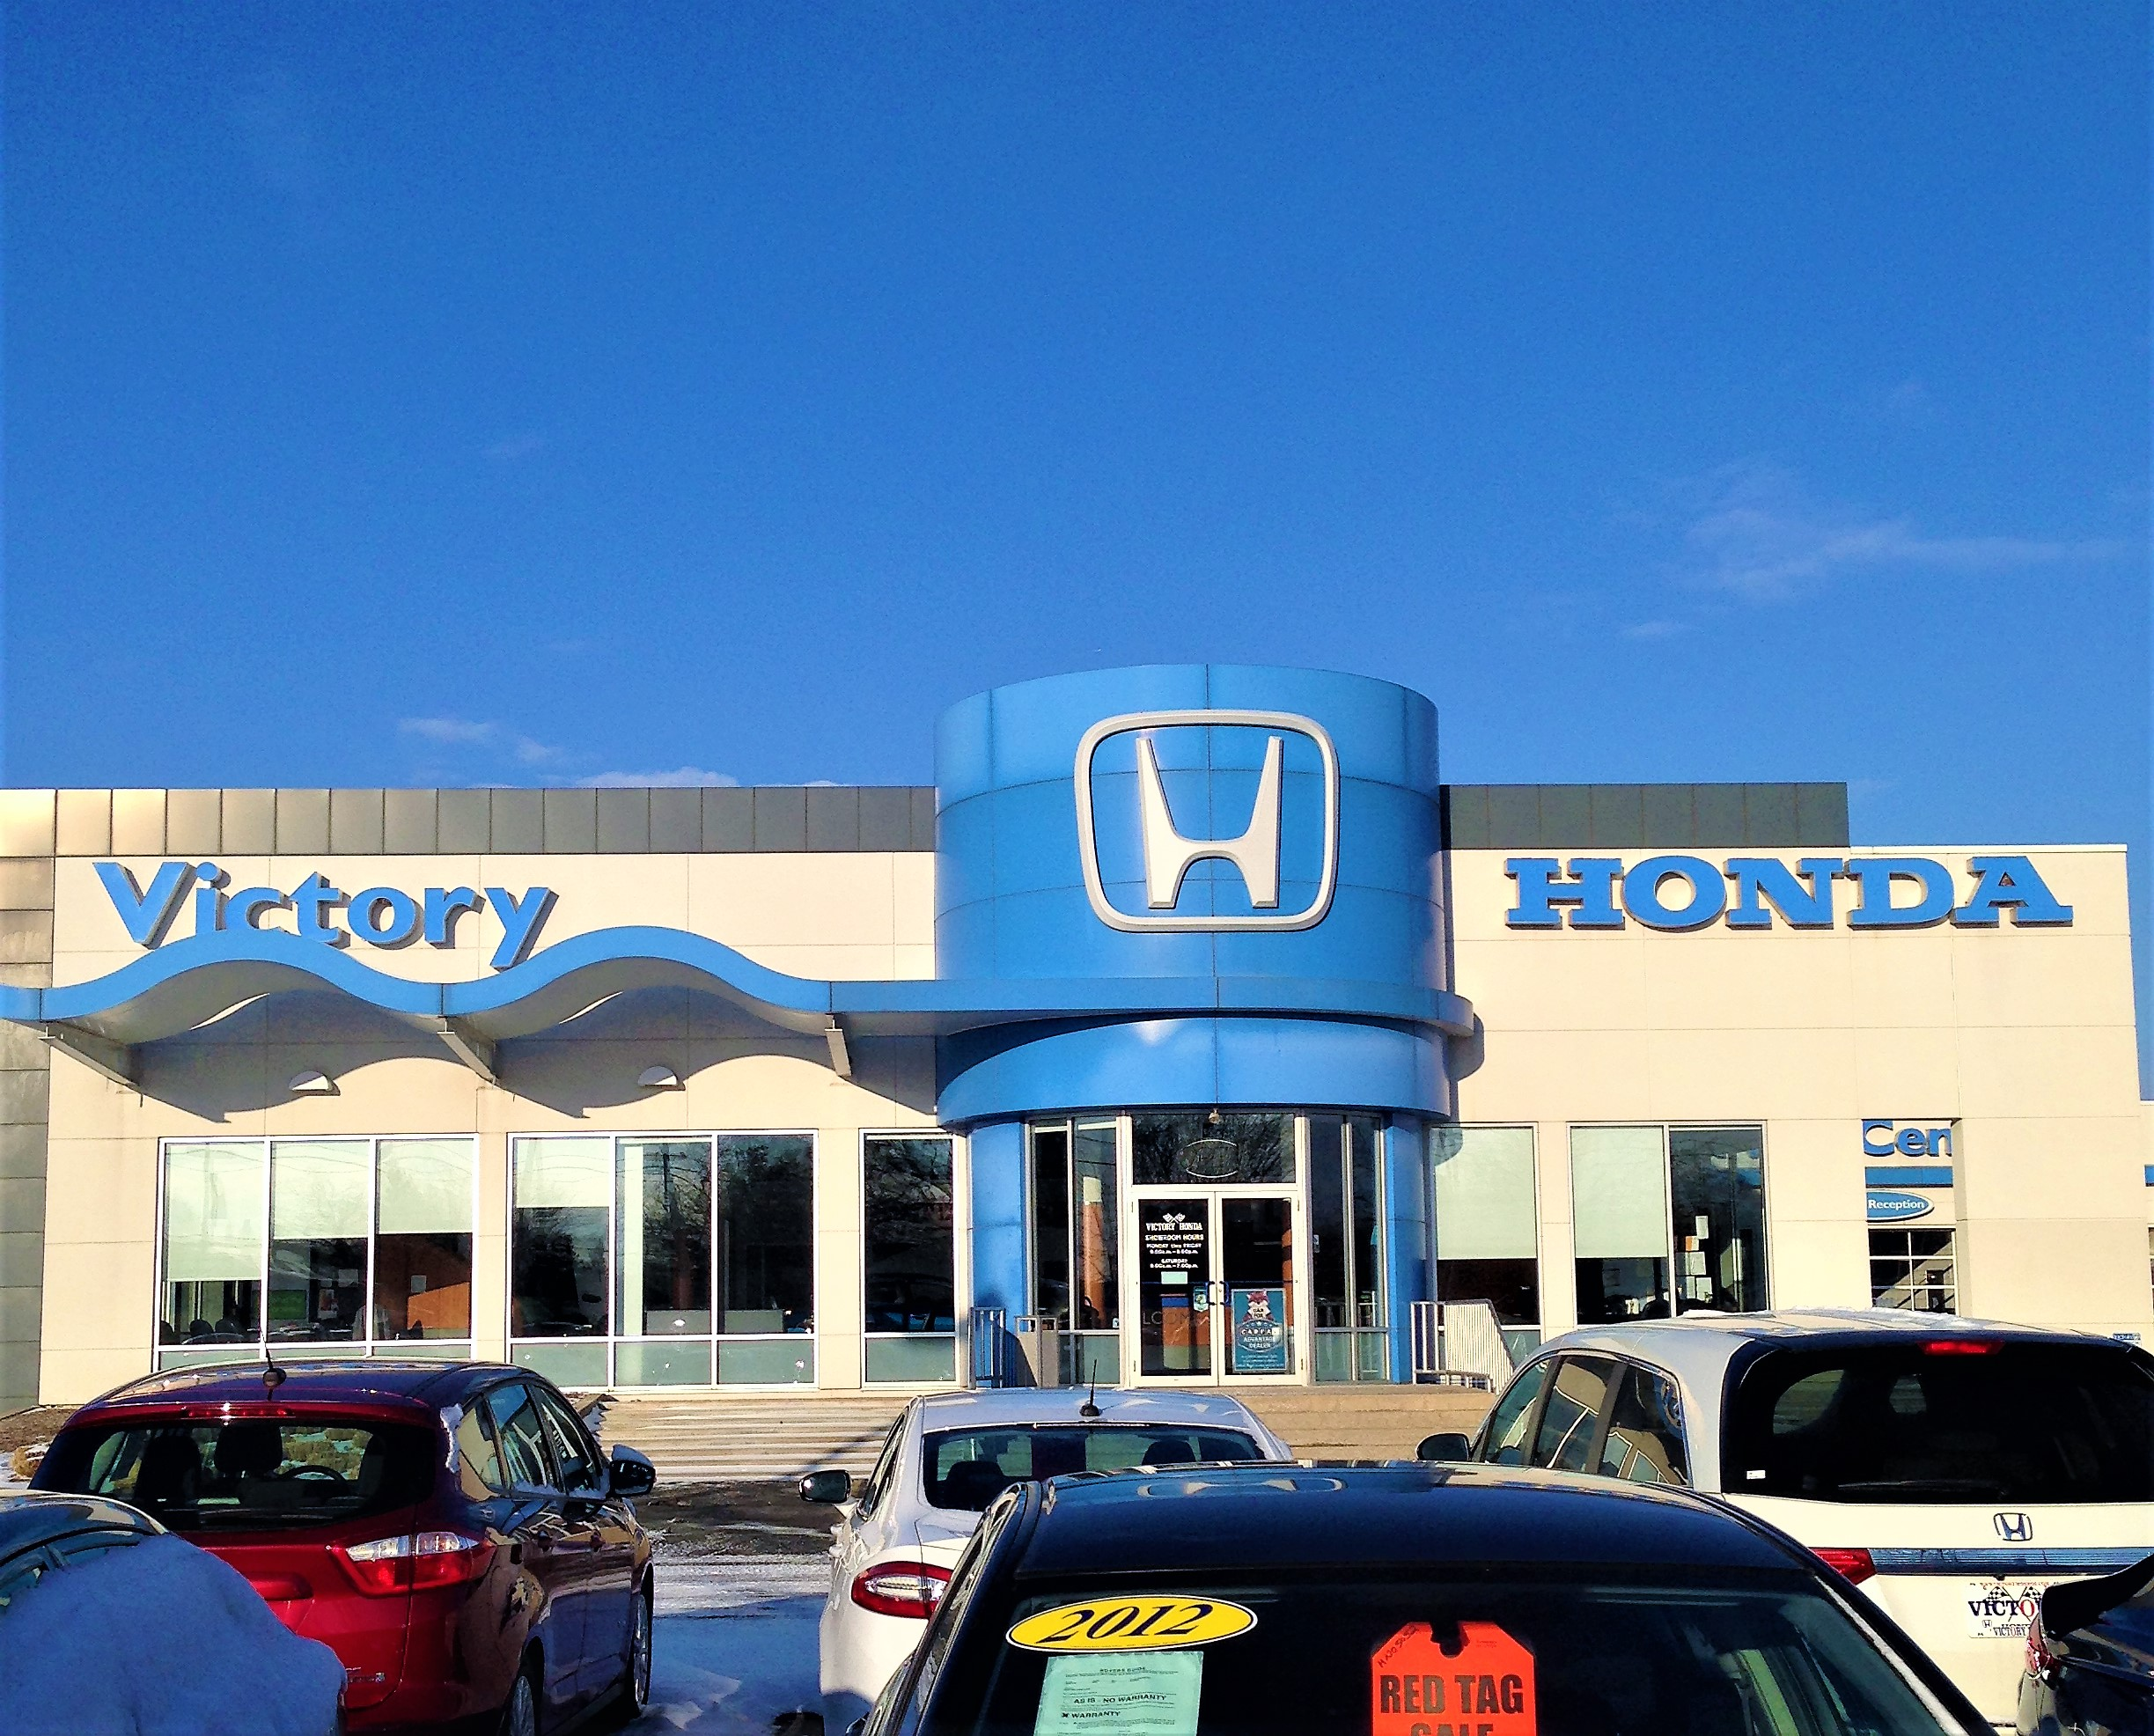 victory honda new honda dealership in monroe mi 48162 autos post. Black Bedroom Furniture Sets. Home Design Ideas